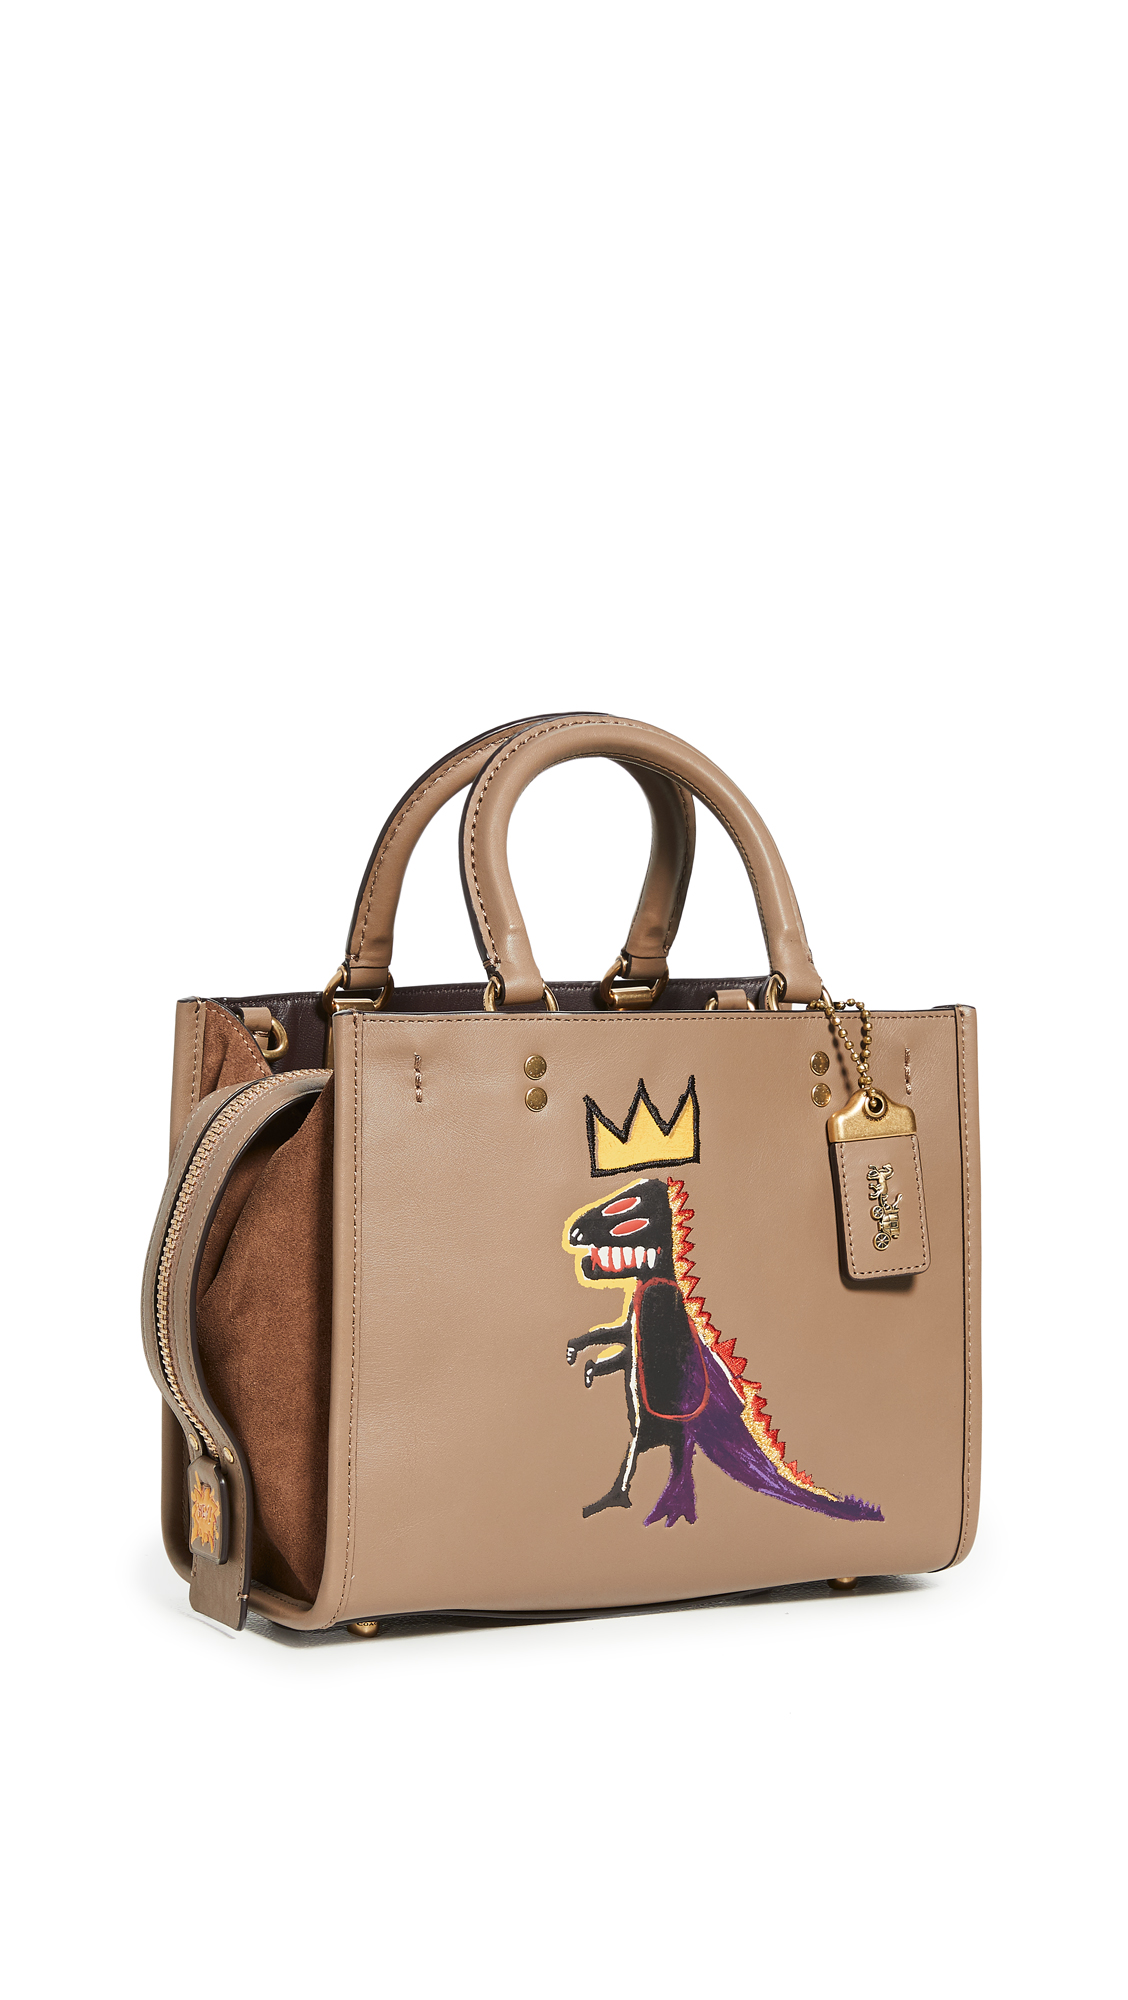 Coach 1941 X BASQUIAT PEZ DISPENSER ROGUE BAG 25